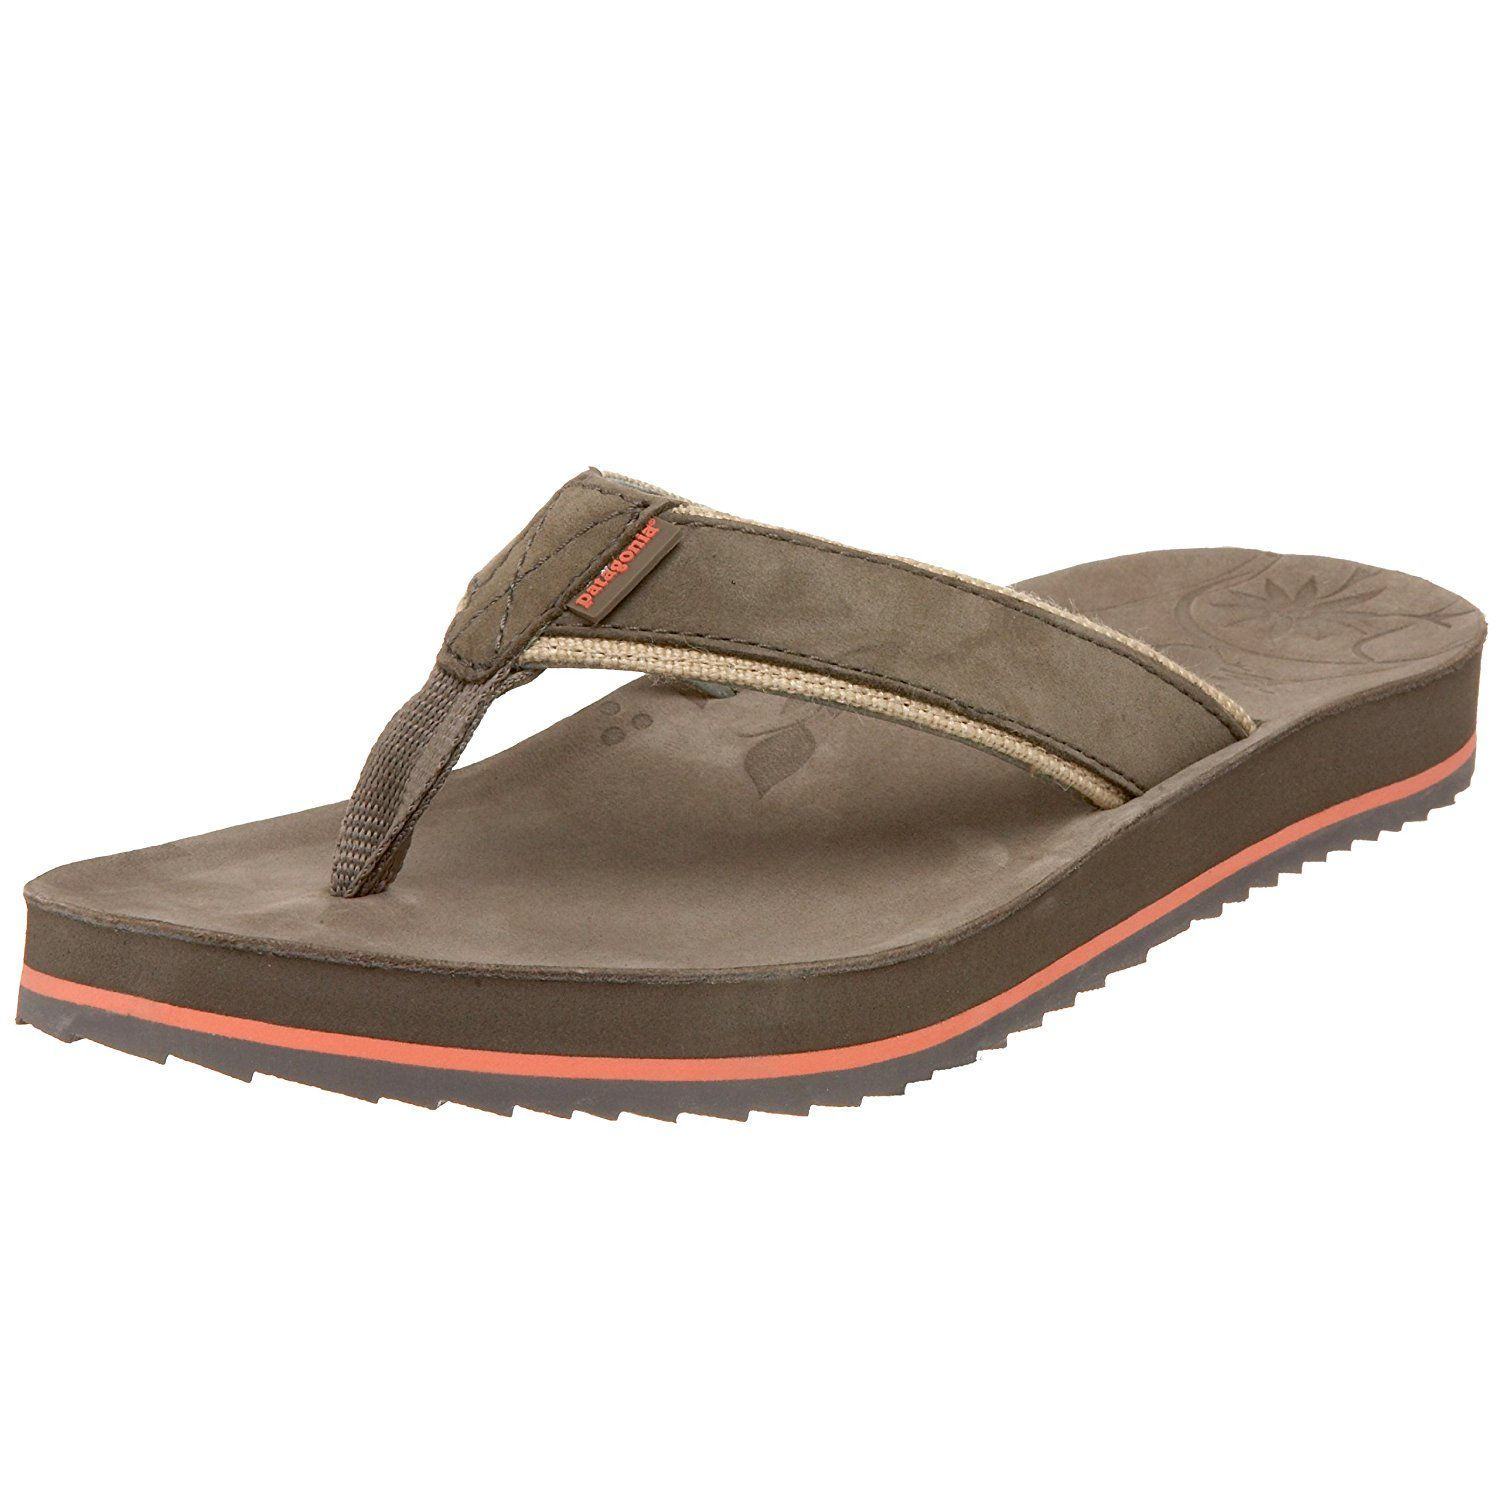 e24259262c6 Patagonia Women s Fly Away Flip-Flop   For more information